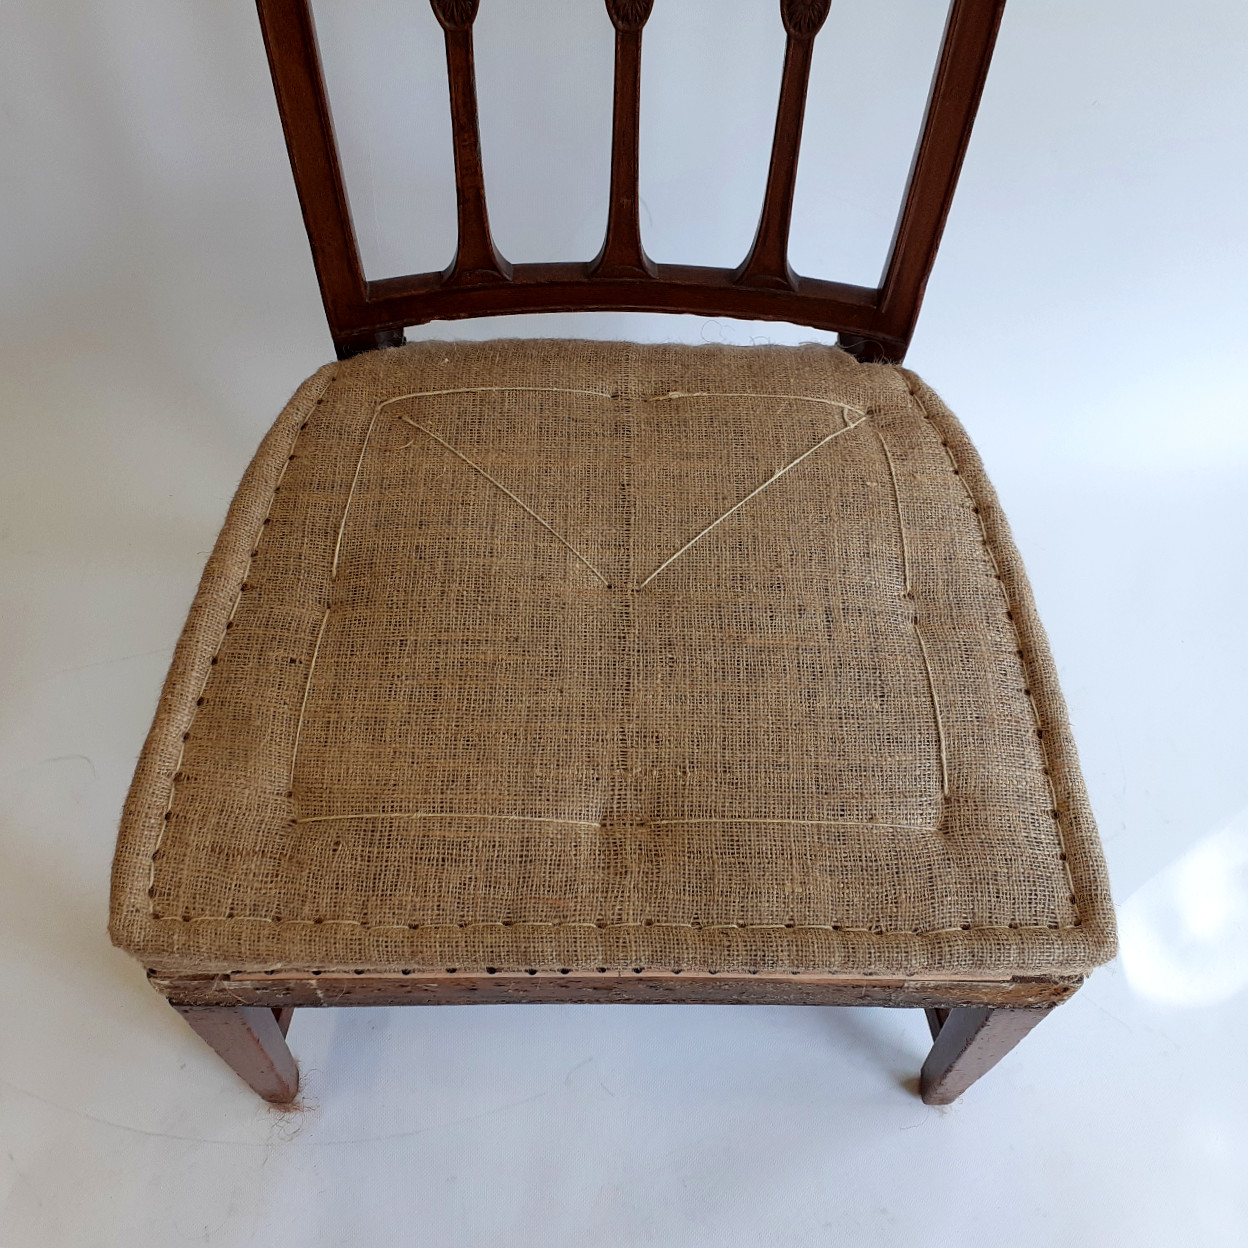 Traditionally upholstery stitching technique